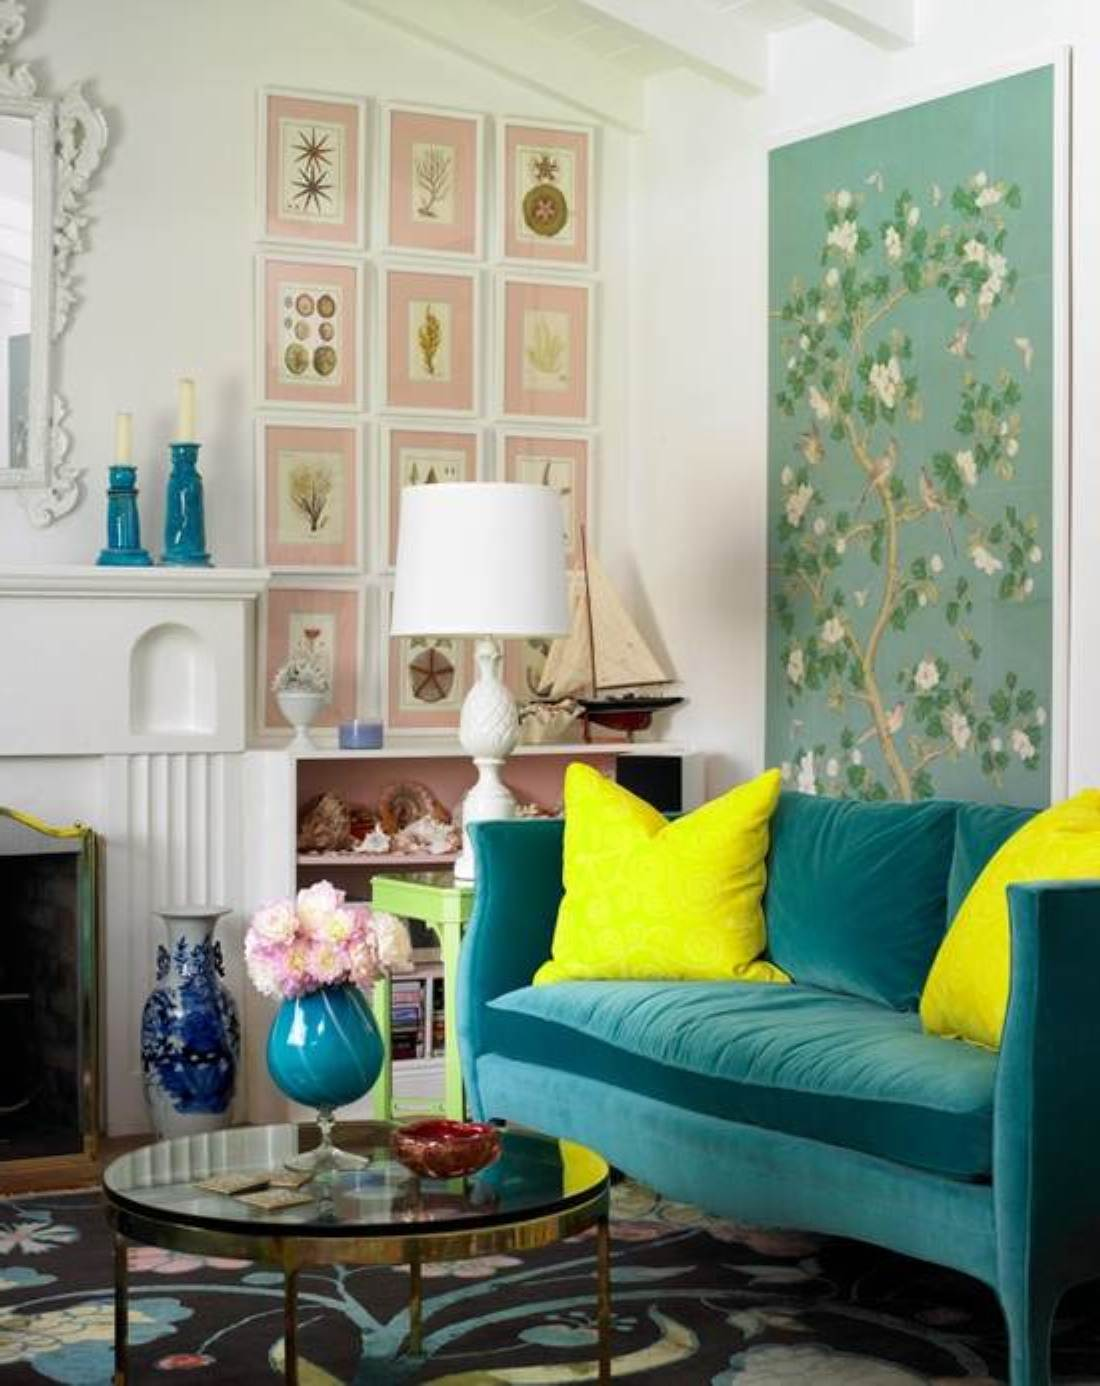 30 Amazing Small Spaces Living Room Design Ideas Decoration Love